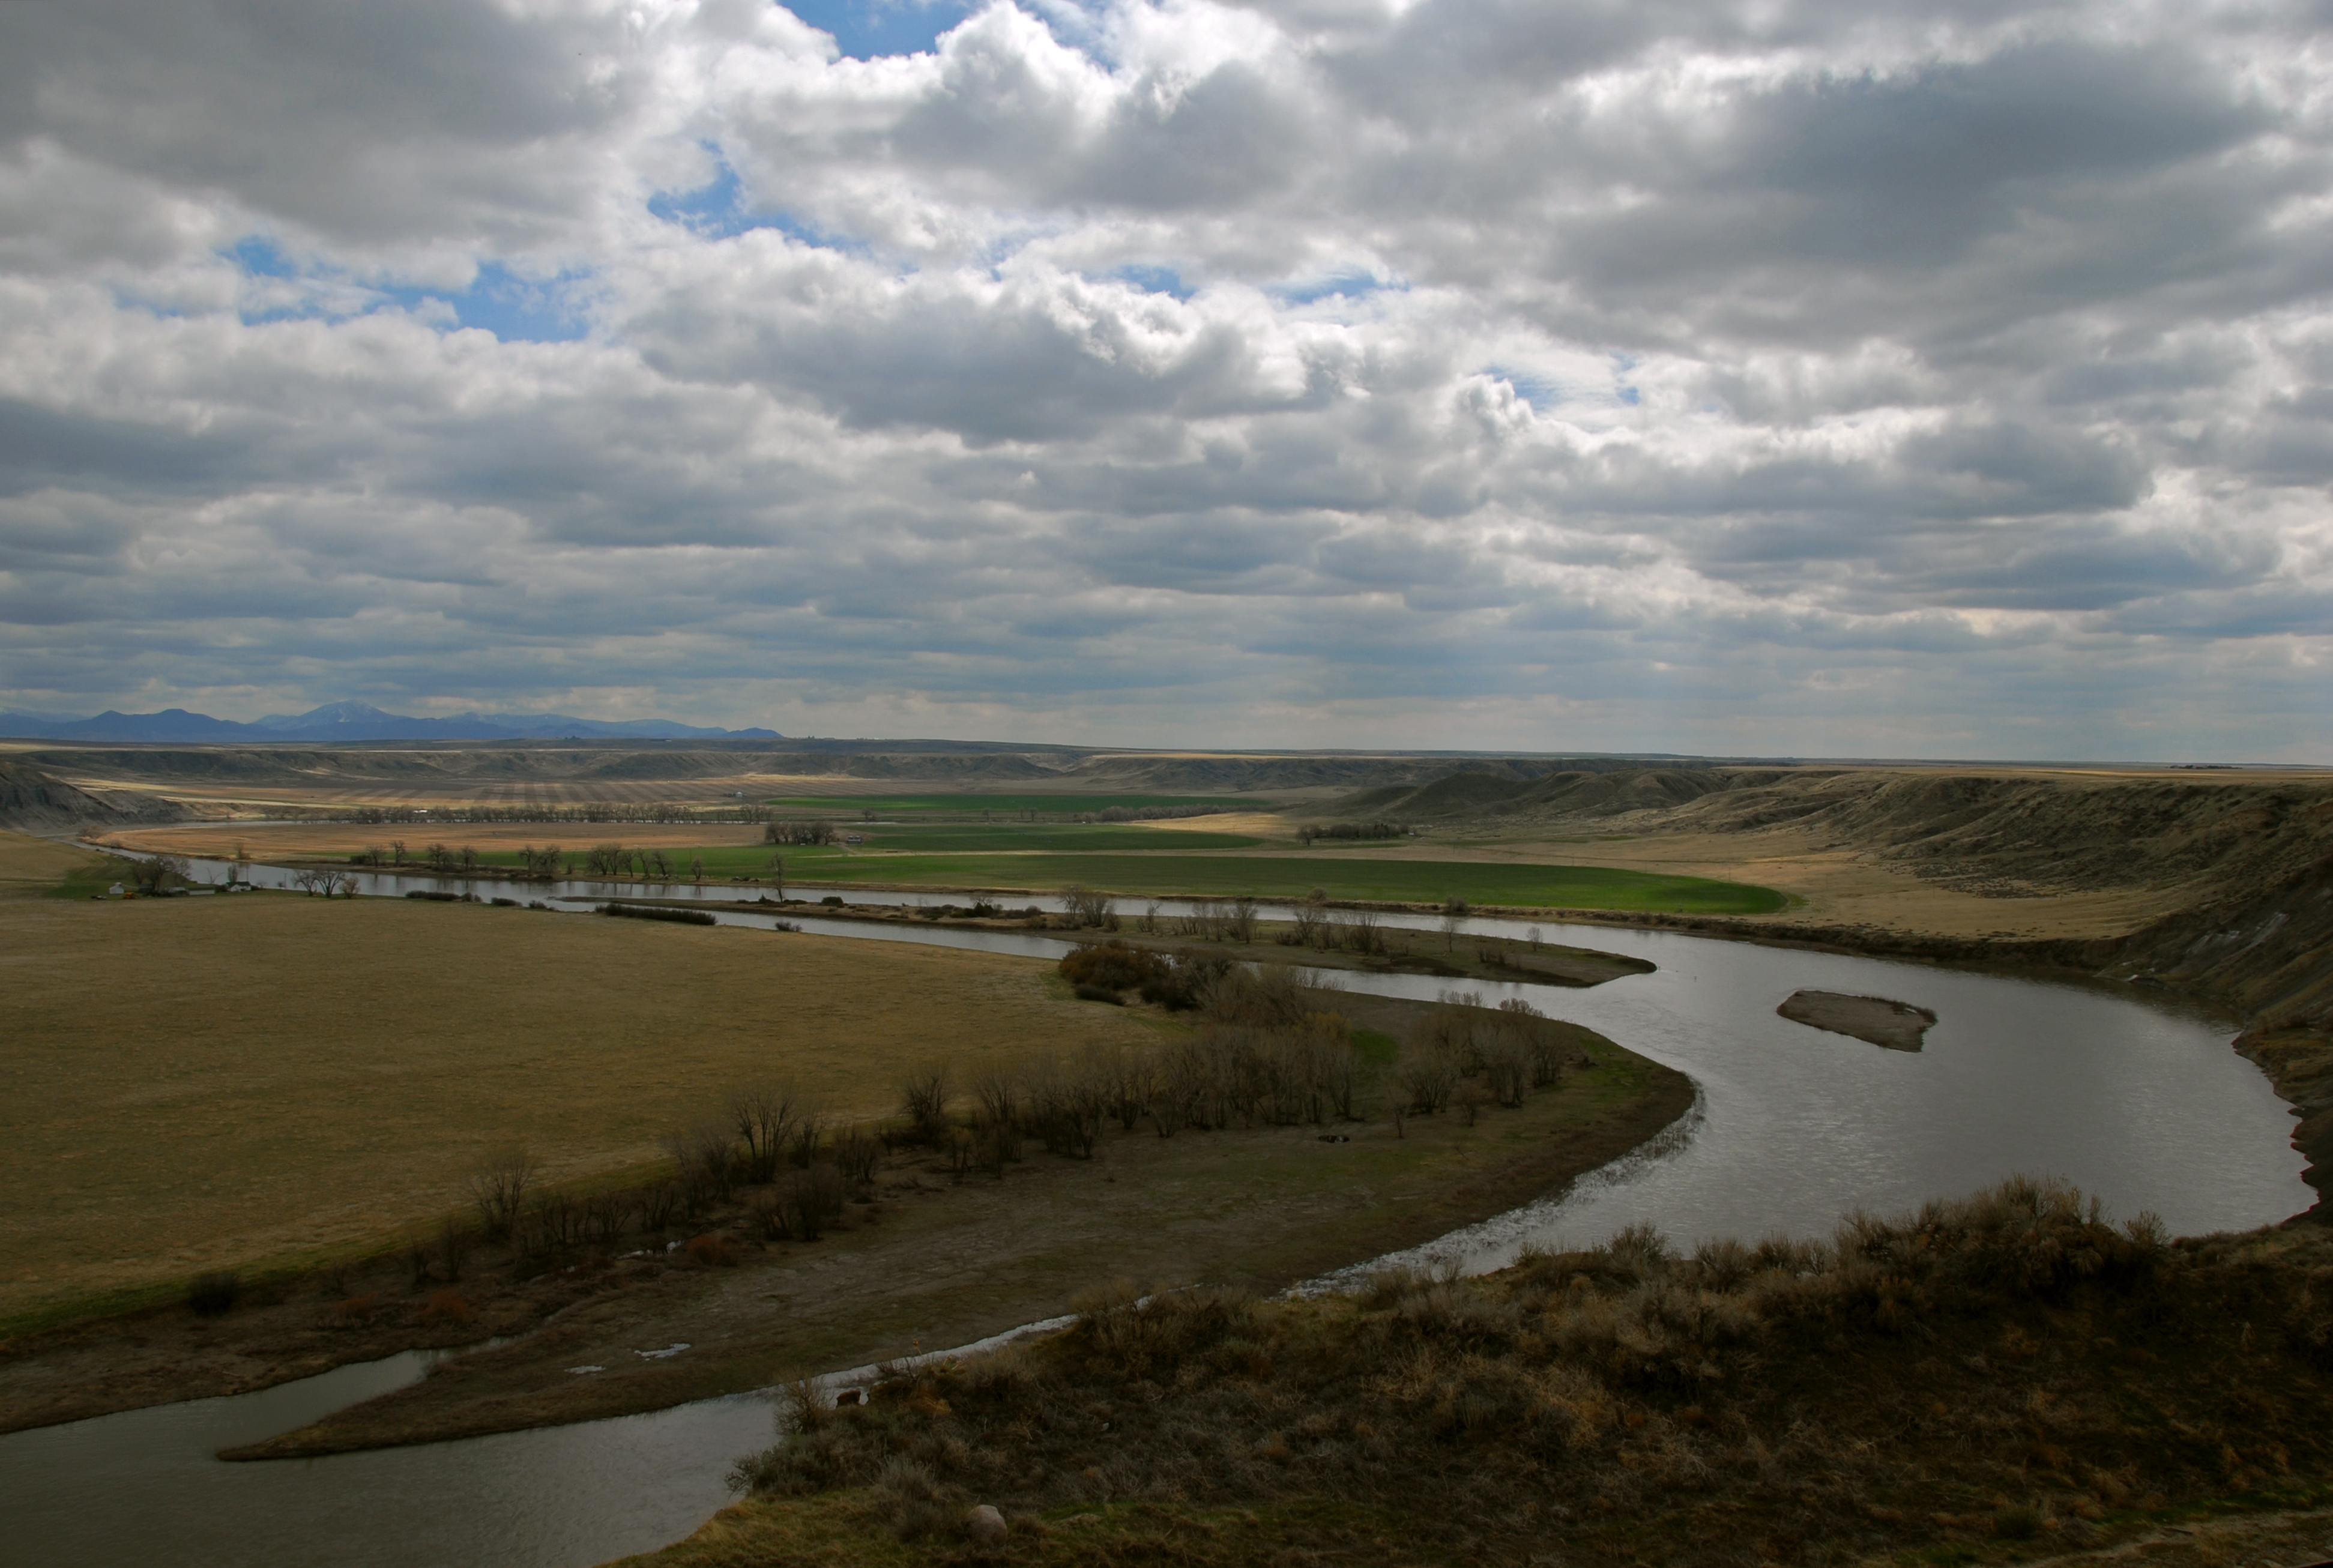 Missouri by Fort Benton